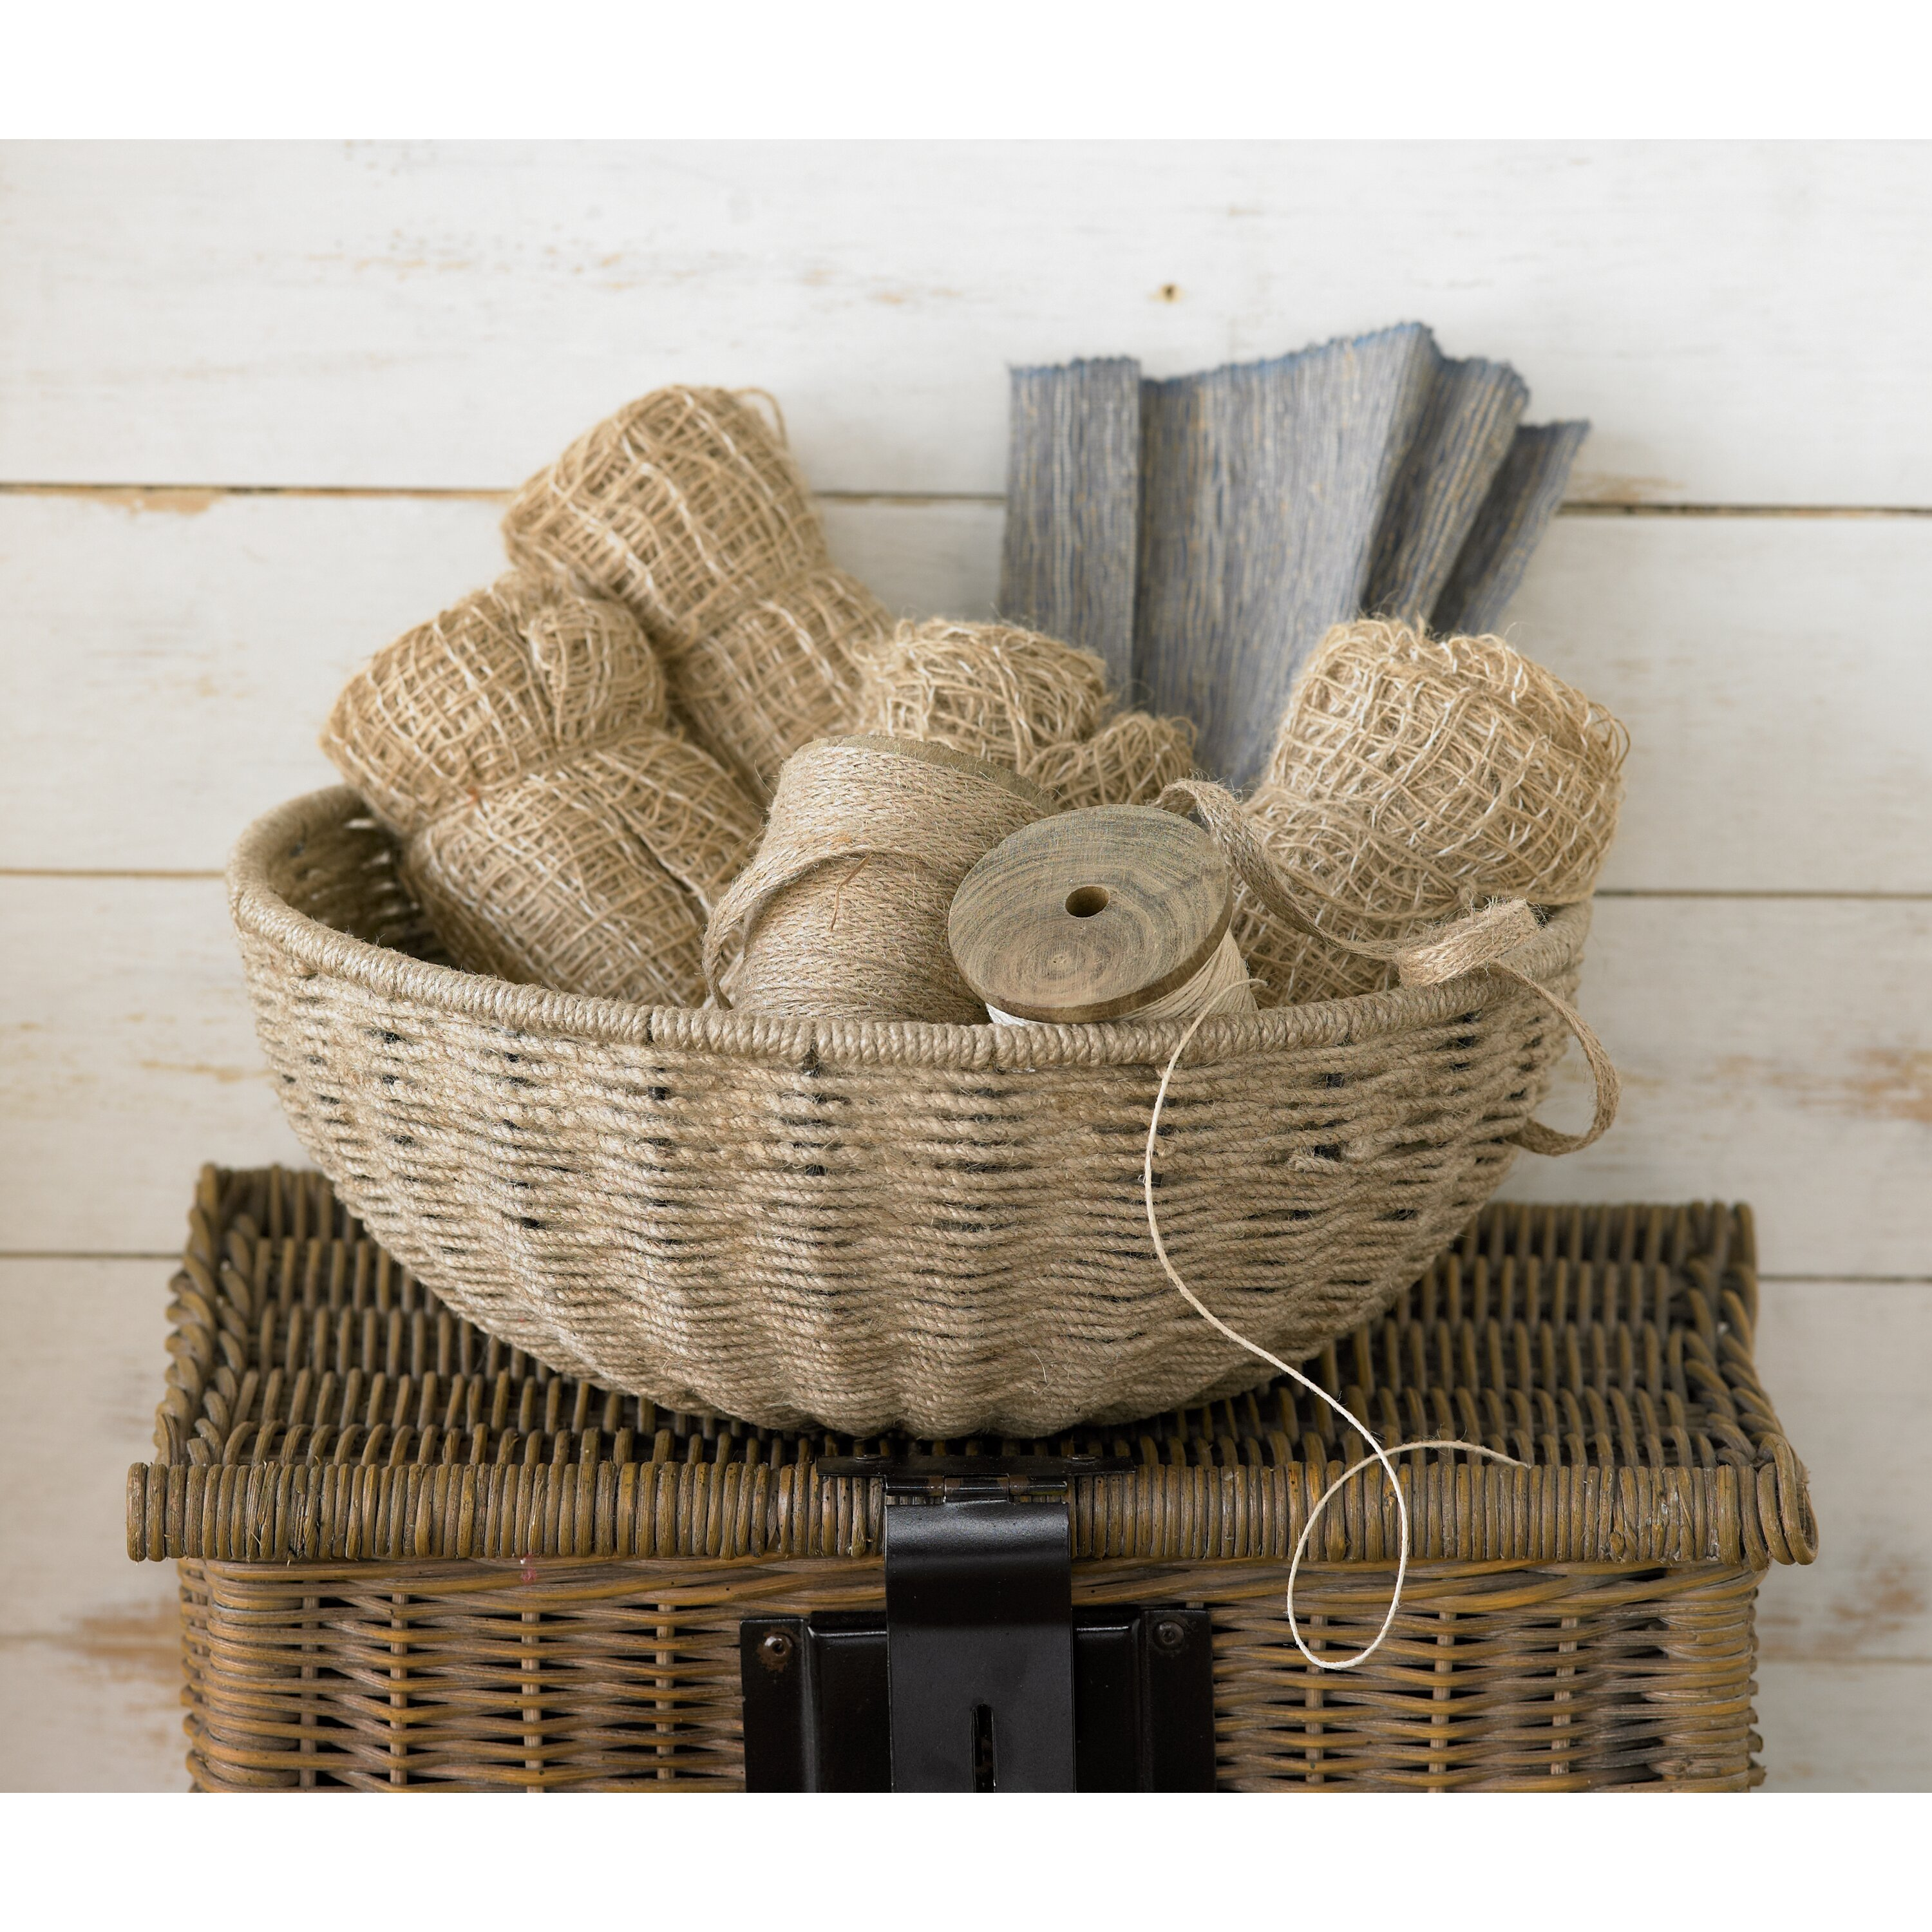 How To Weave A Basket With Rope : St croix kindwer woven jute rope basket with iron frame